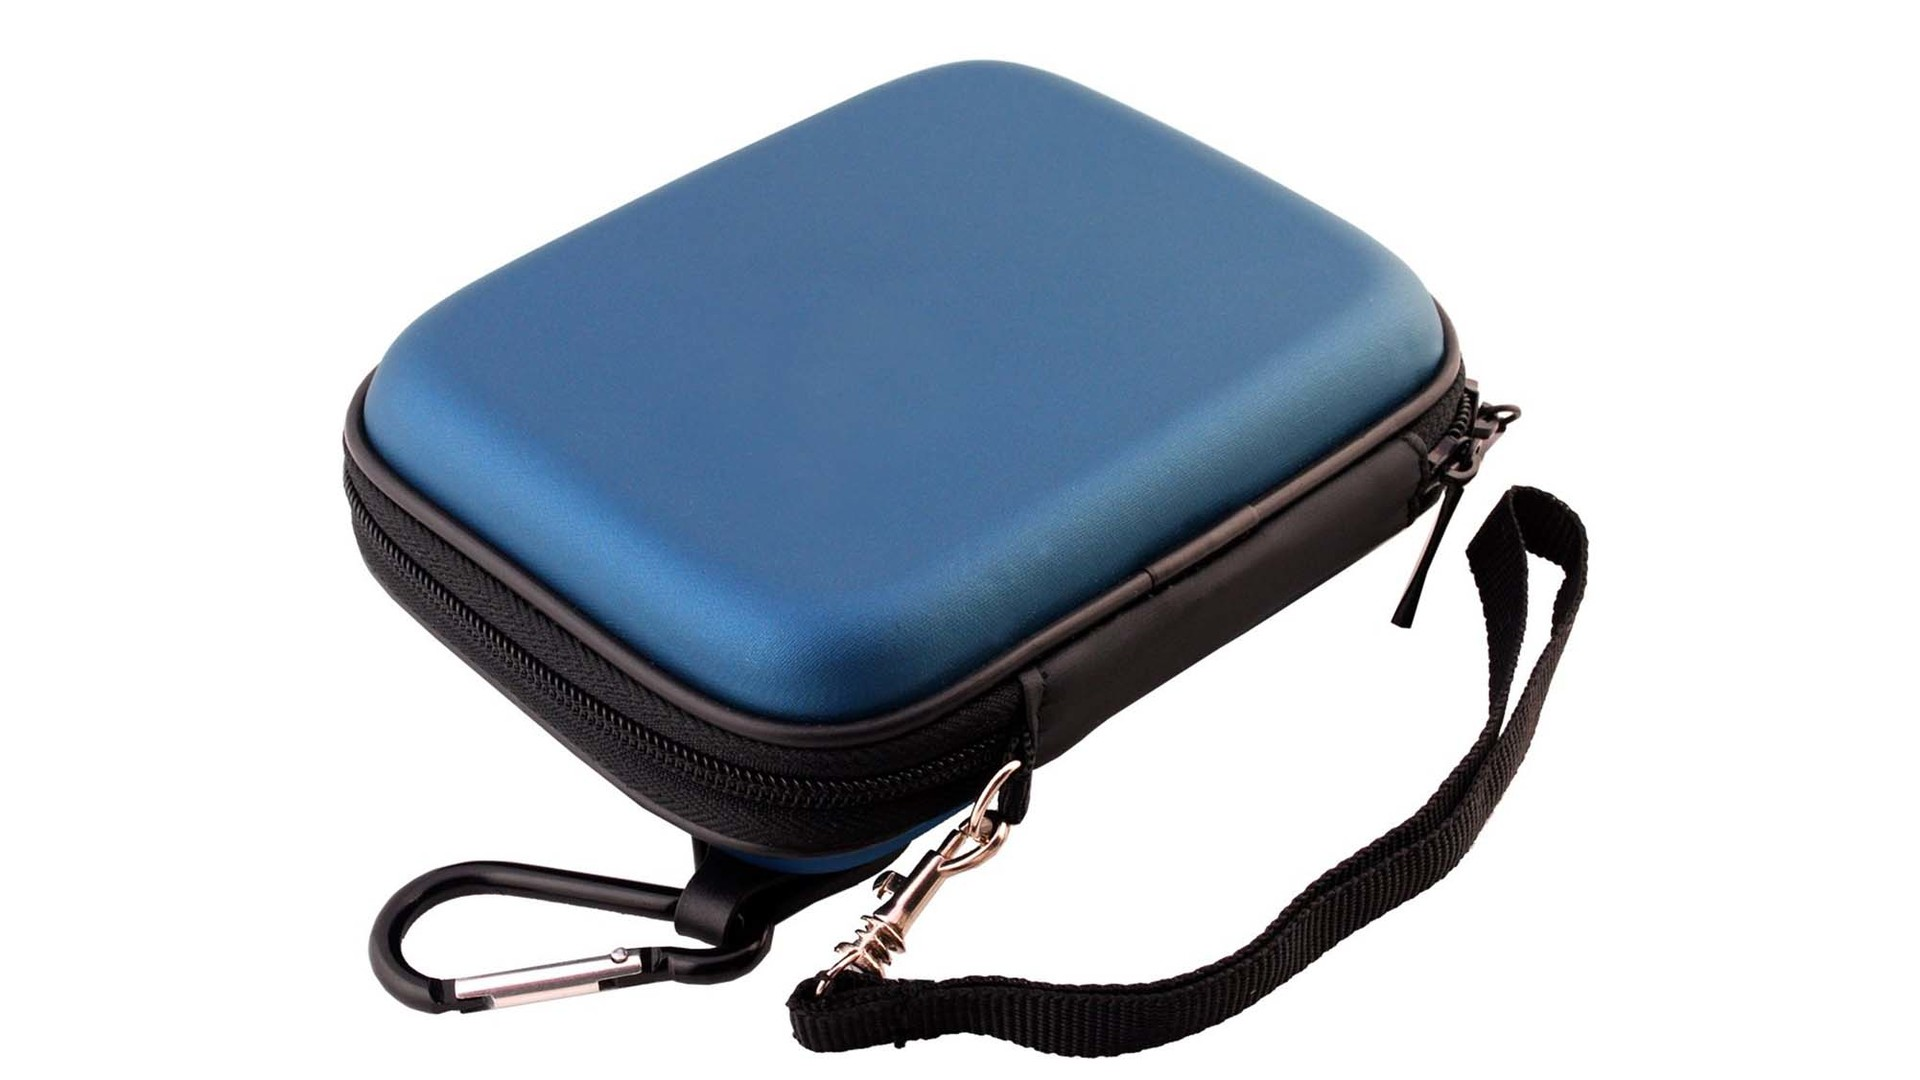 Prosperity eva foam case glasses travel case for gopro camera